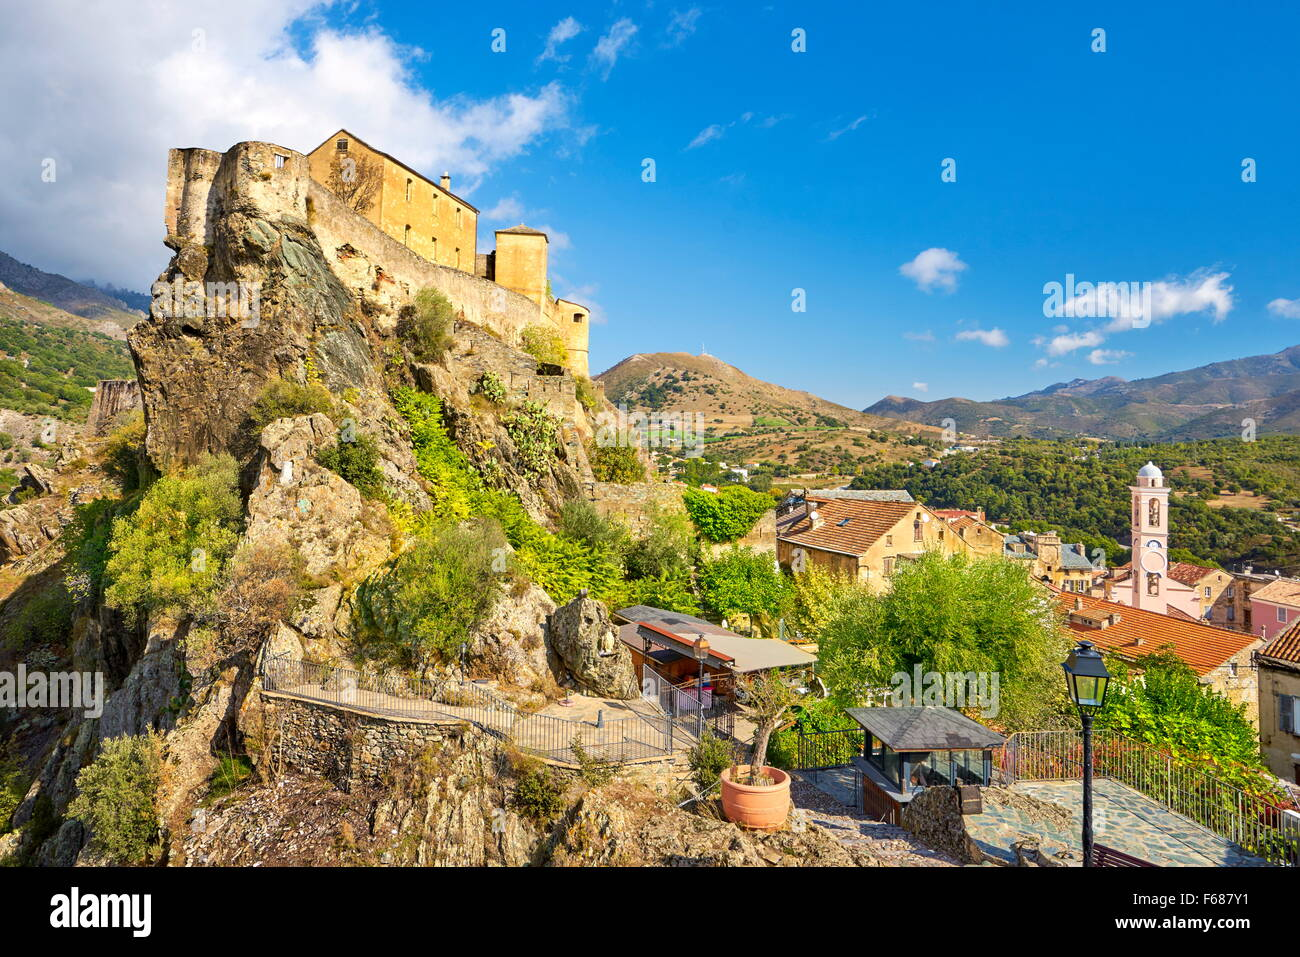 Corte, la citadelle de la vieille ville, Corse, France Photo Stock